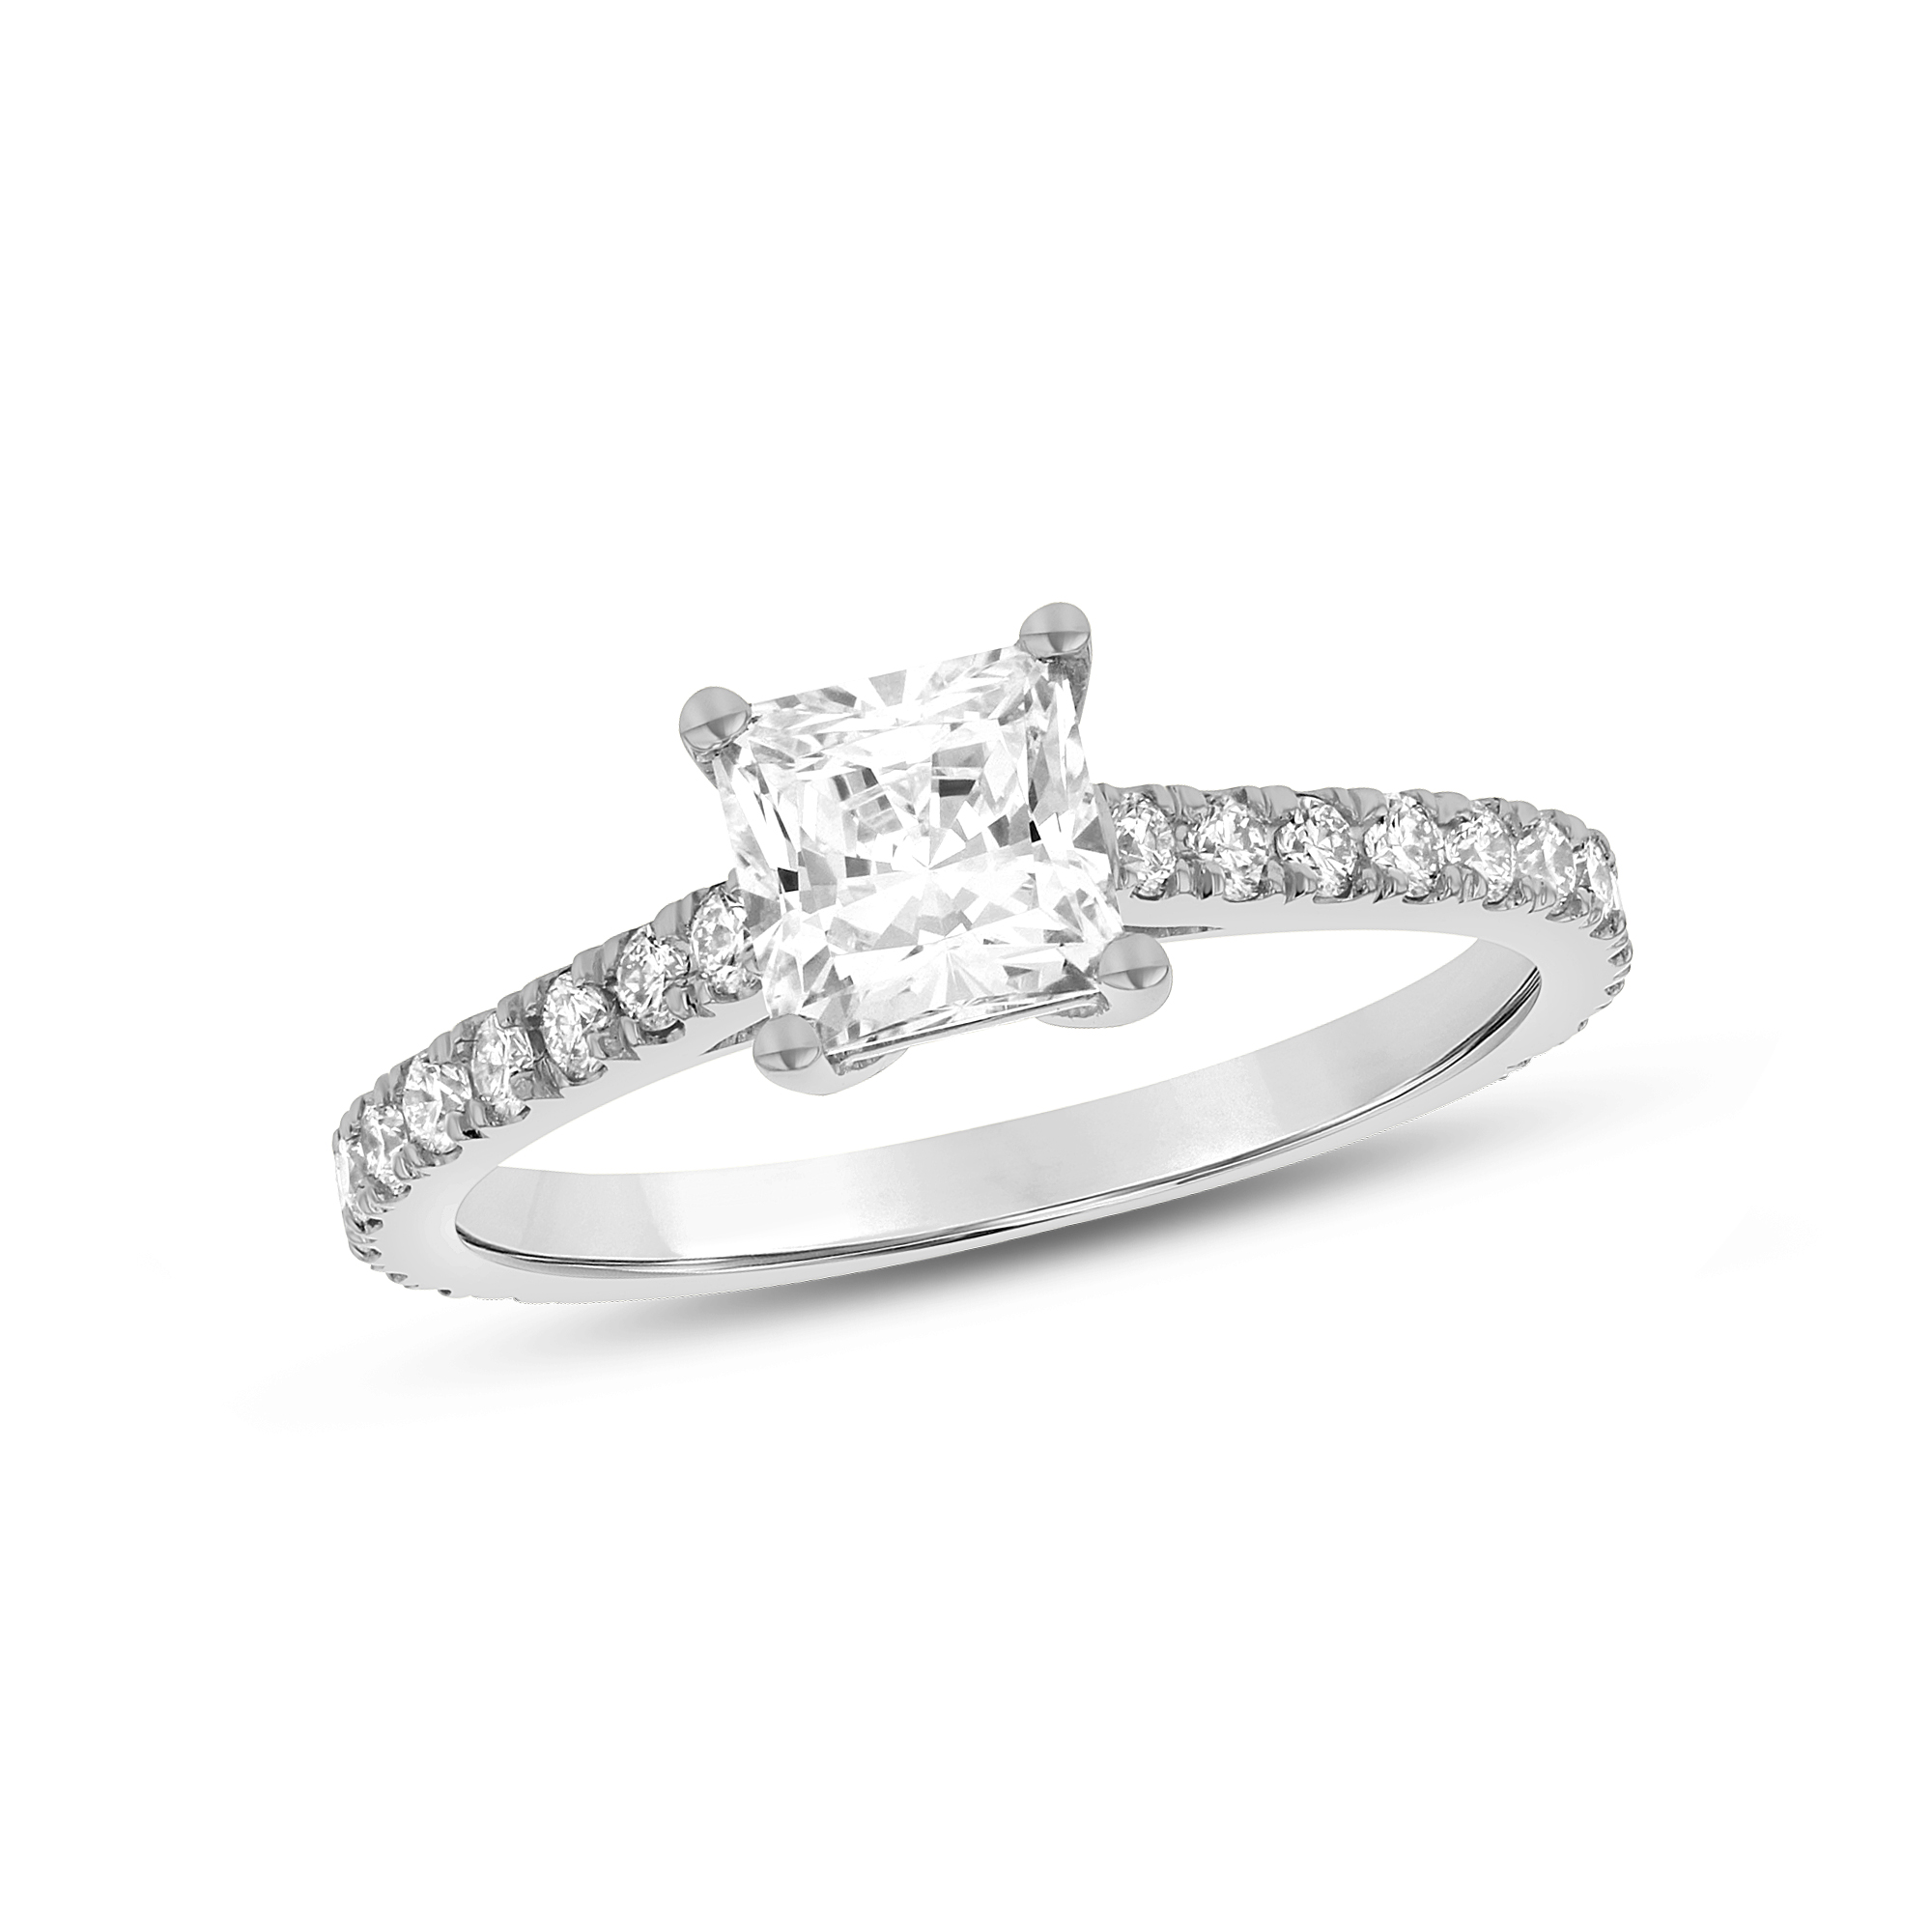 View 1.34ctw Diamond Princess Cut Engagement Ring in 14k Gold